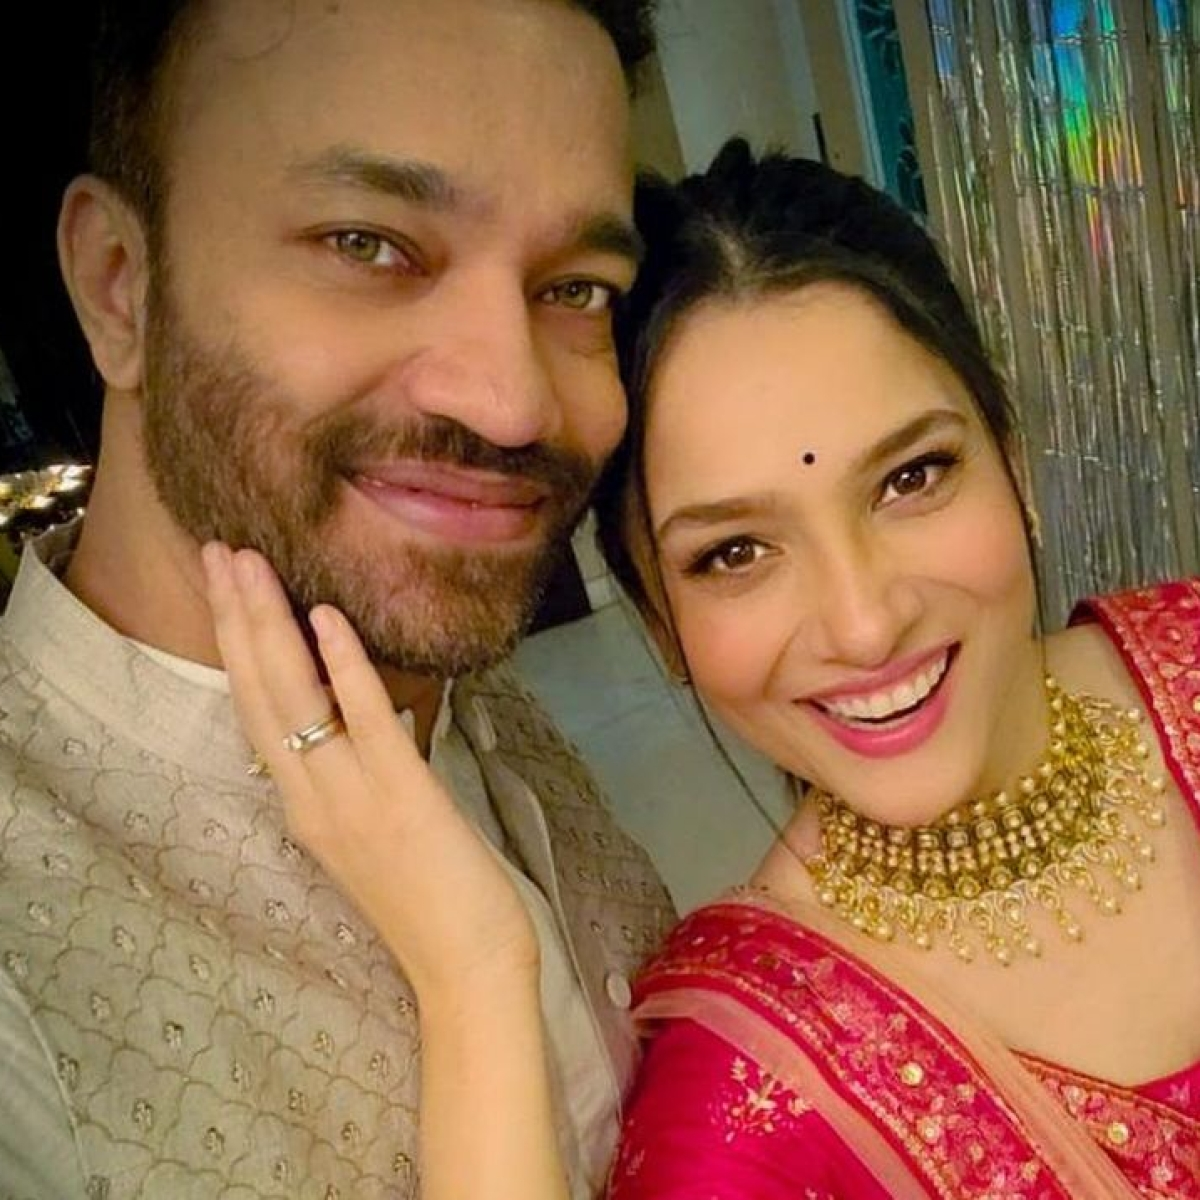 'Sushant ko bhulna maat': SSR fans attack Ankita Lokhande for posting mushy pictures with beau Vicky Jain